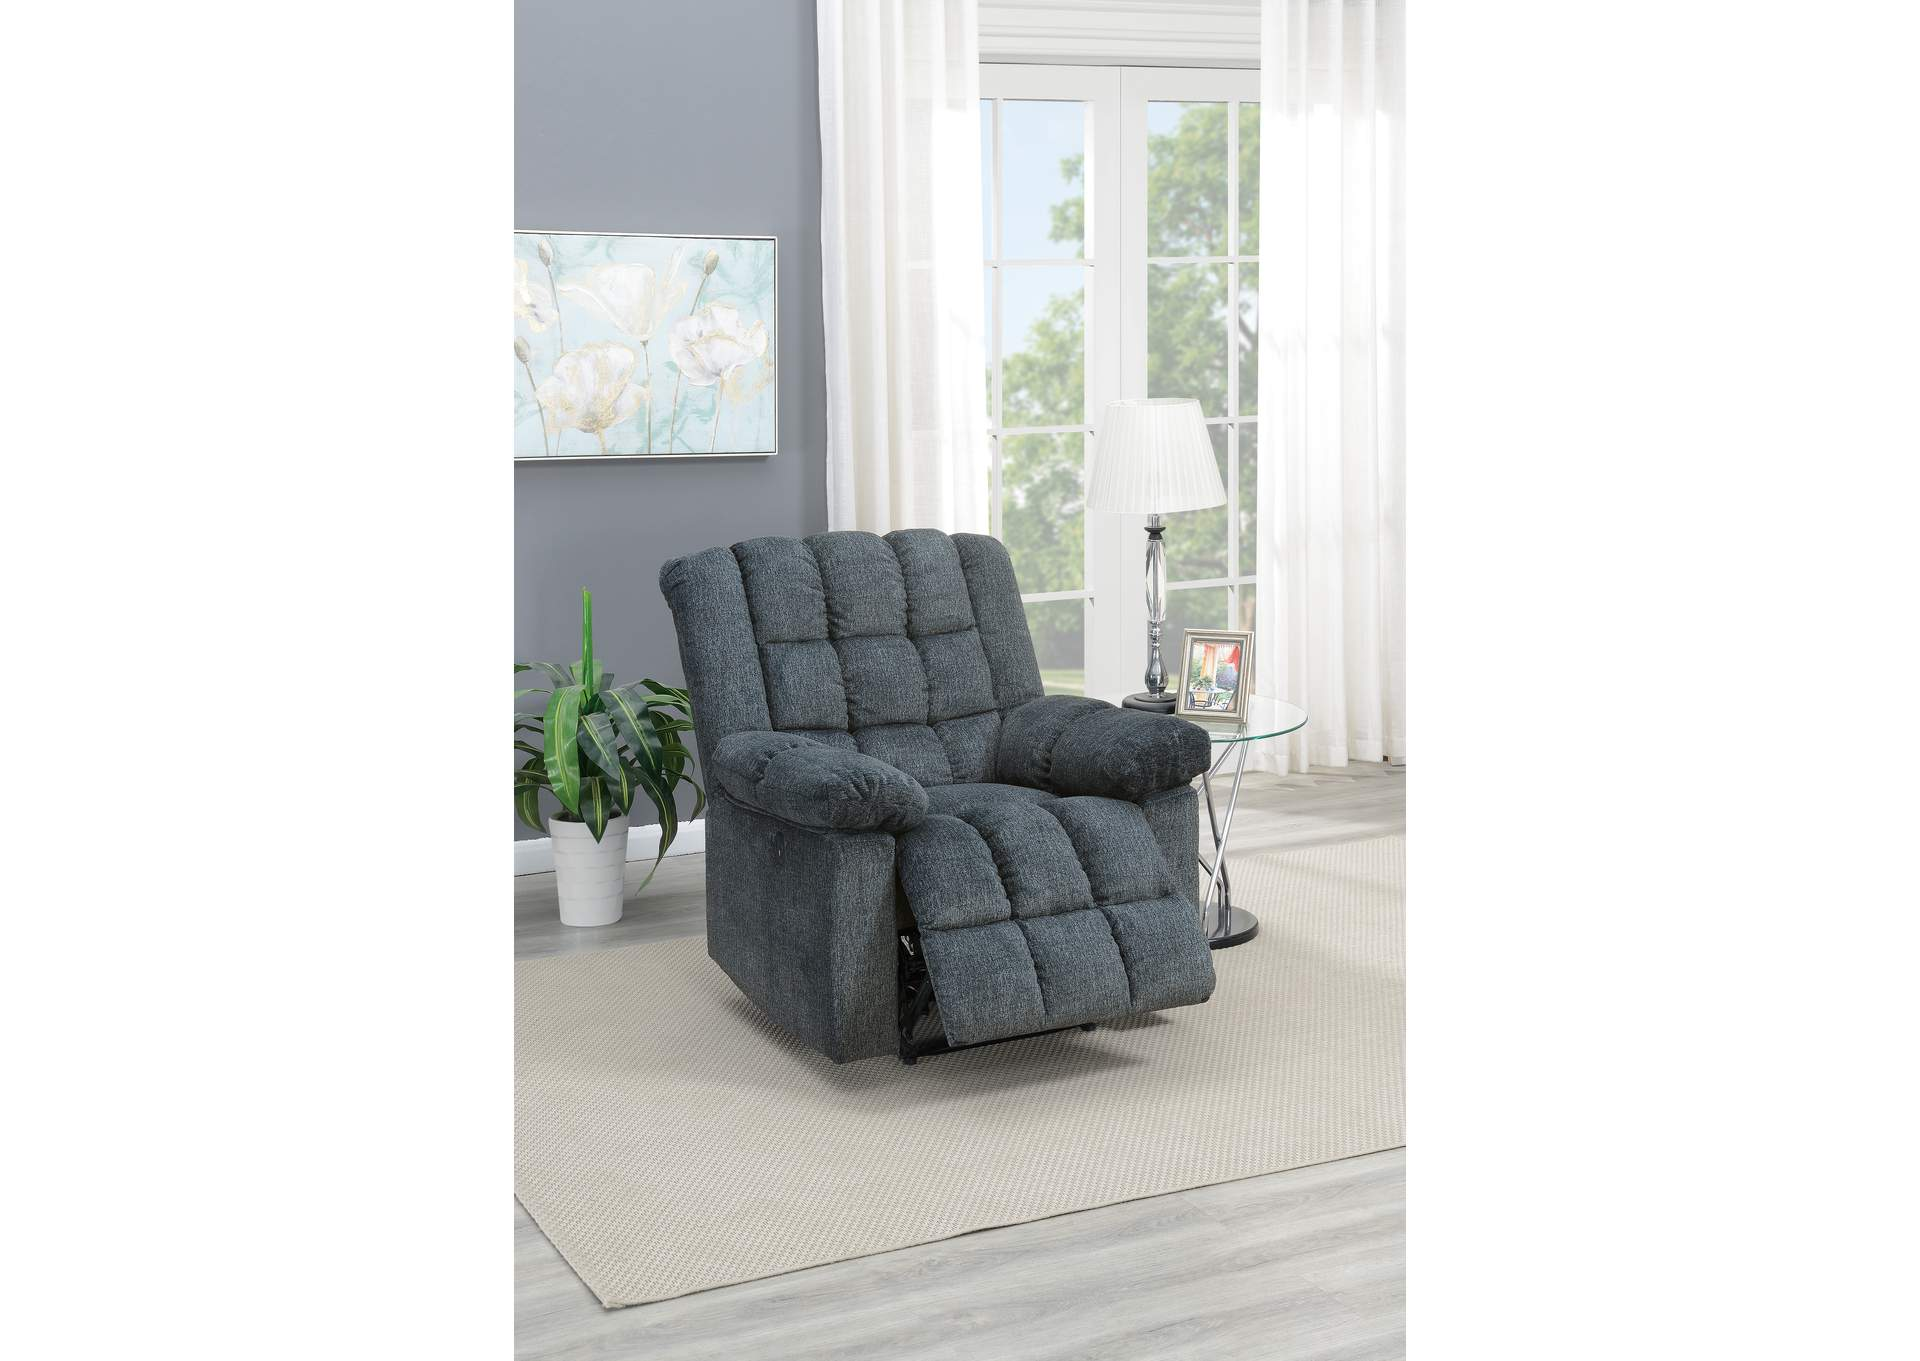 Taiyus Grey Chenille Power Recliner,Poundex